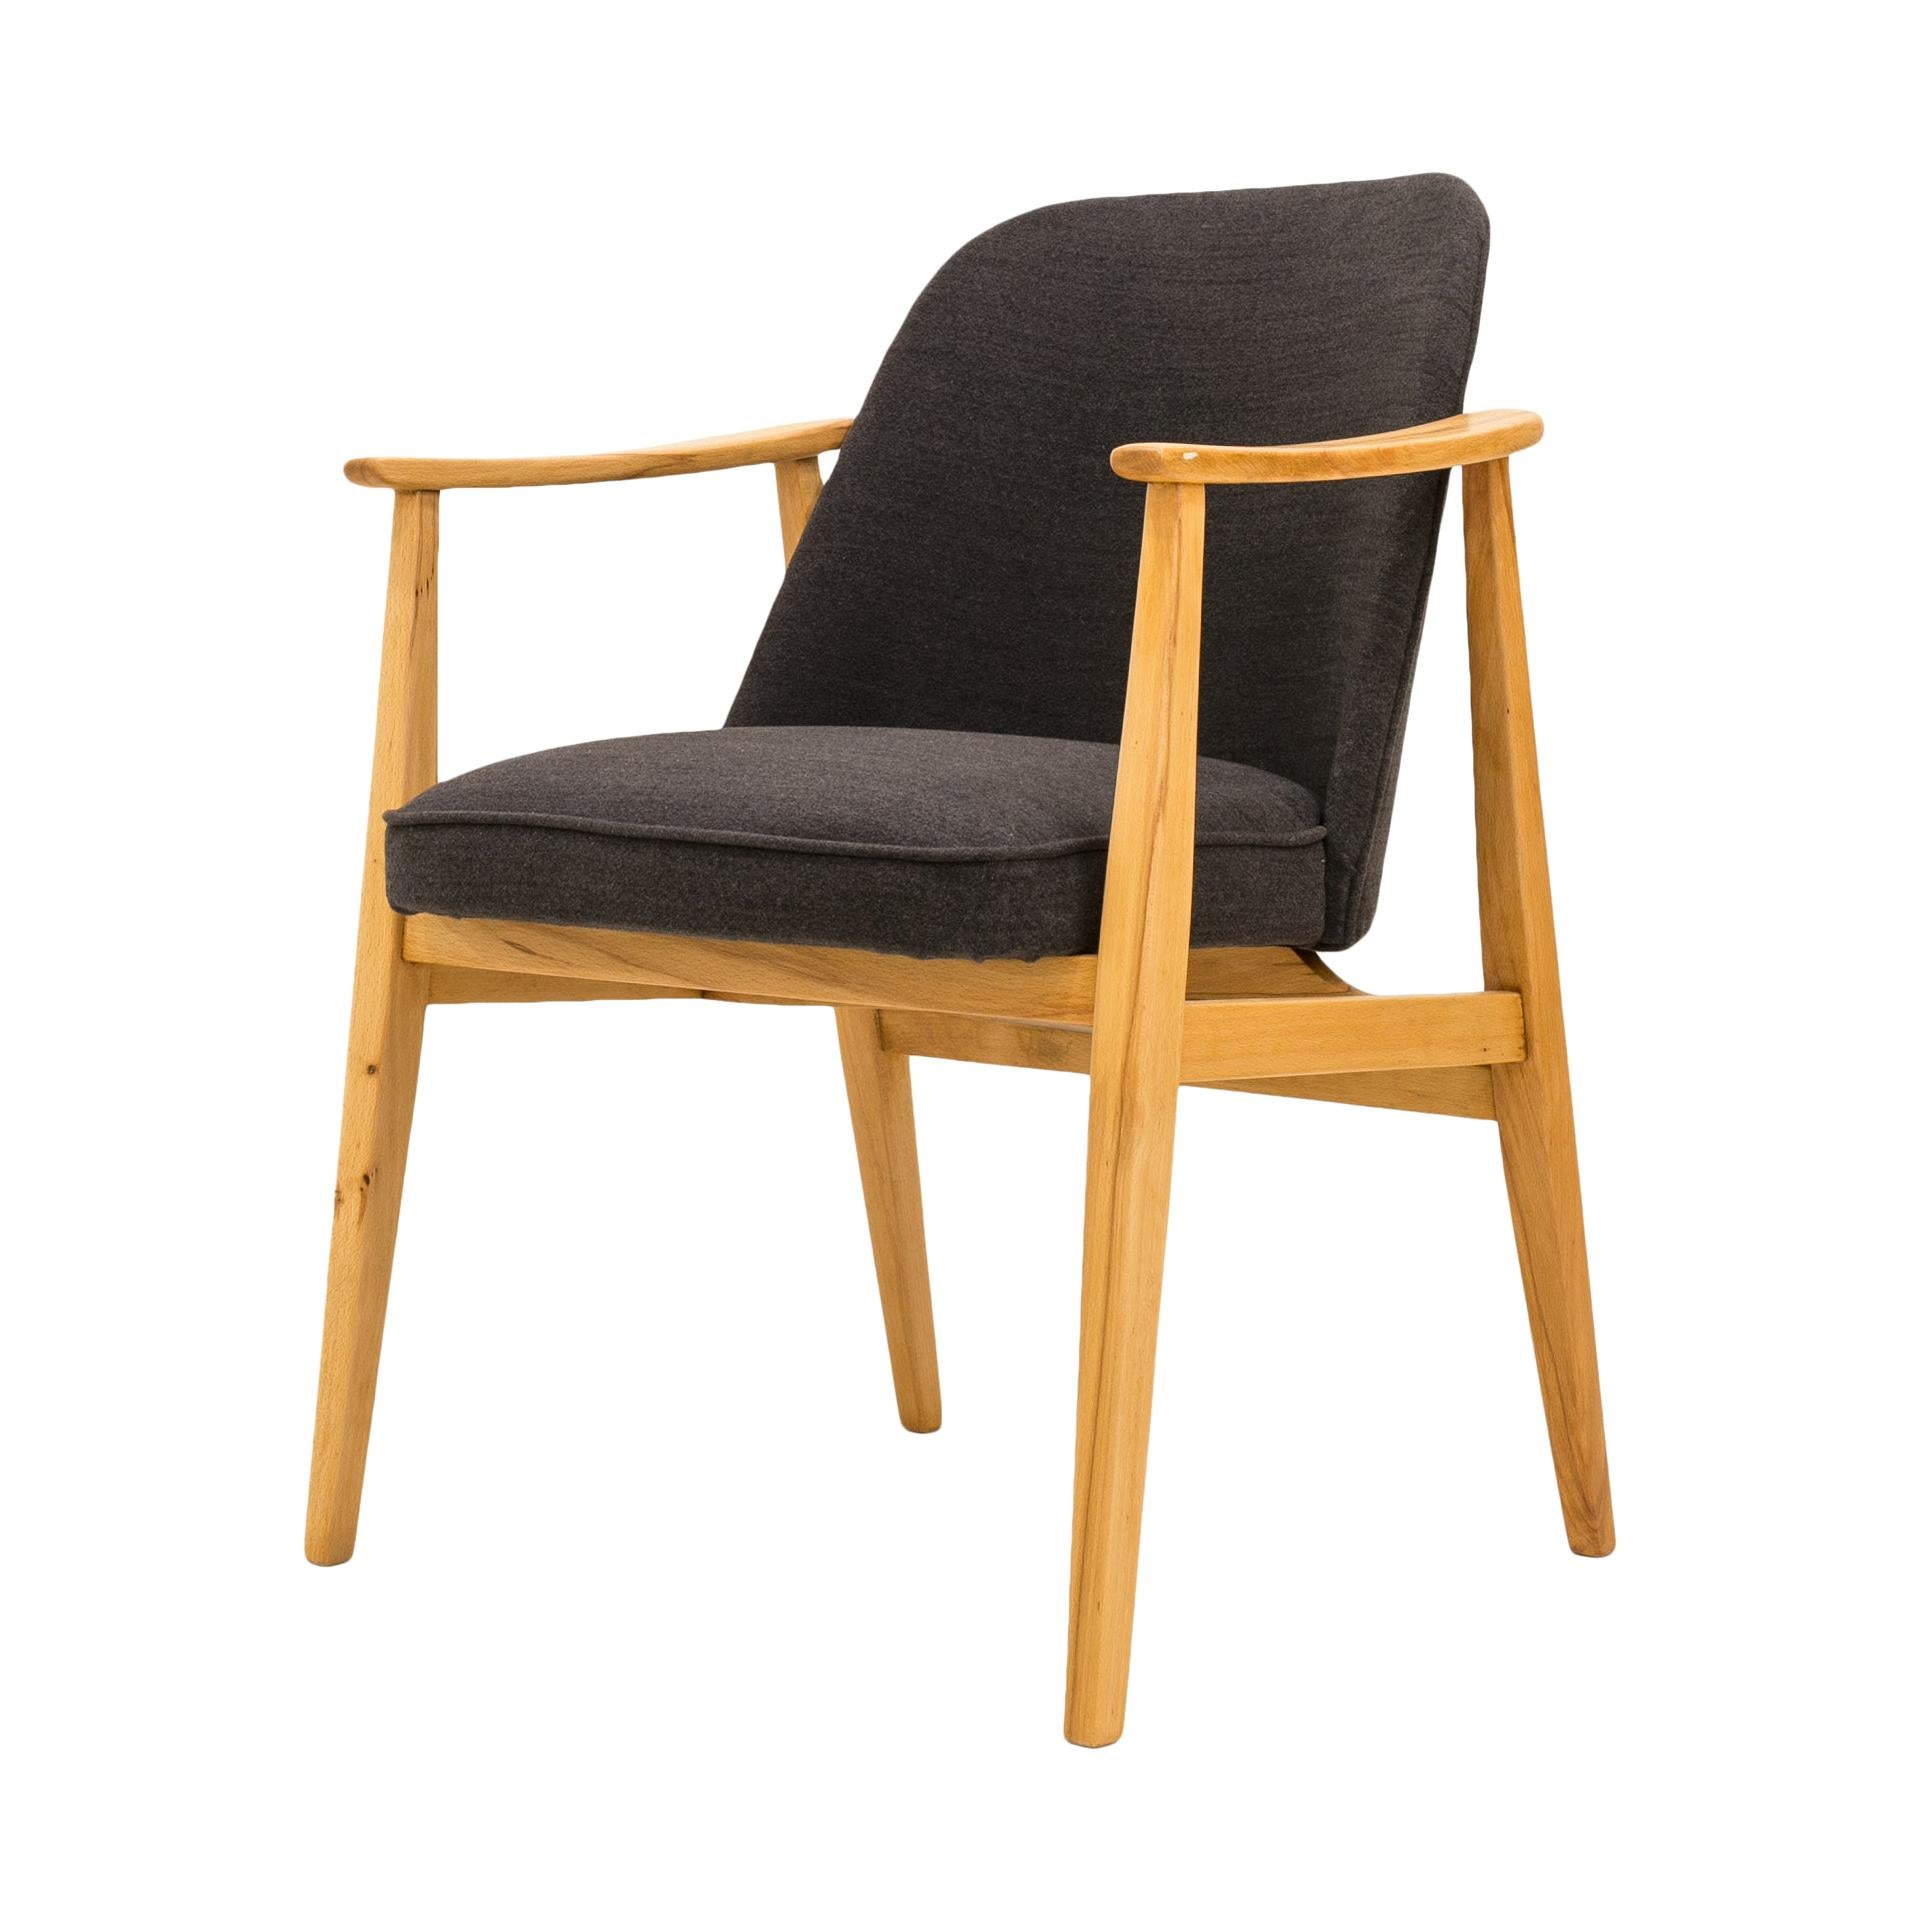 Set of 2 Armchairs, Germany, 1960s